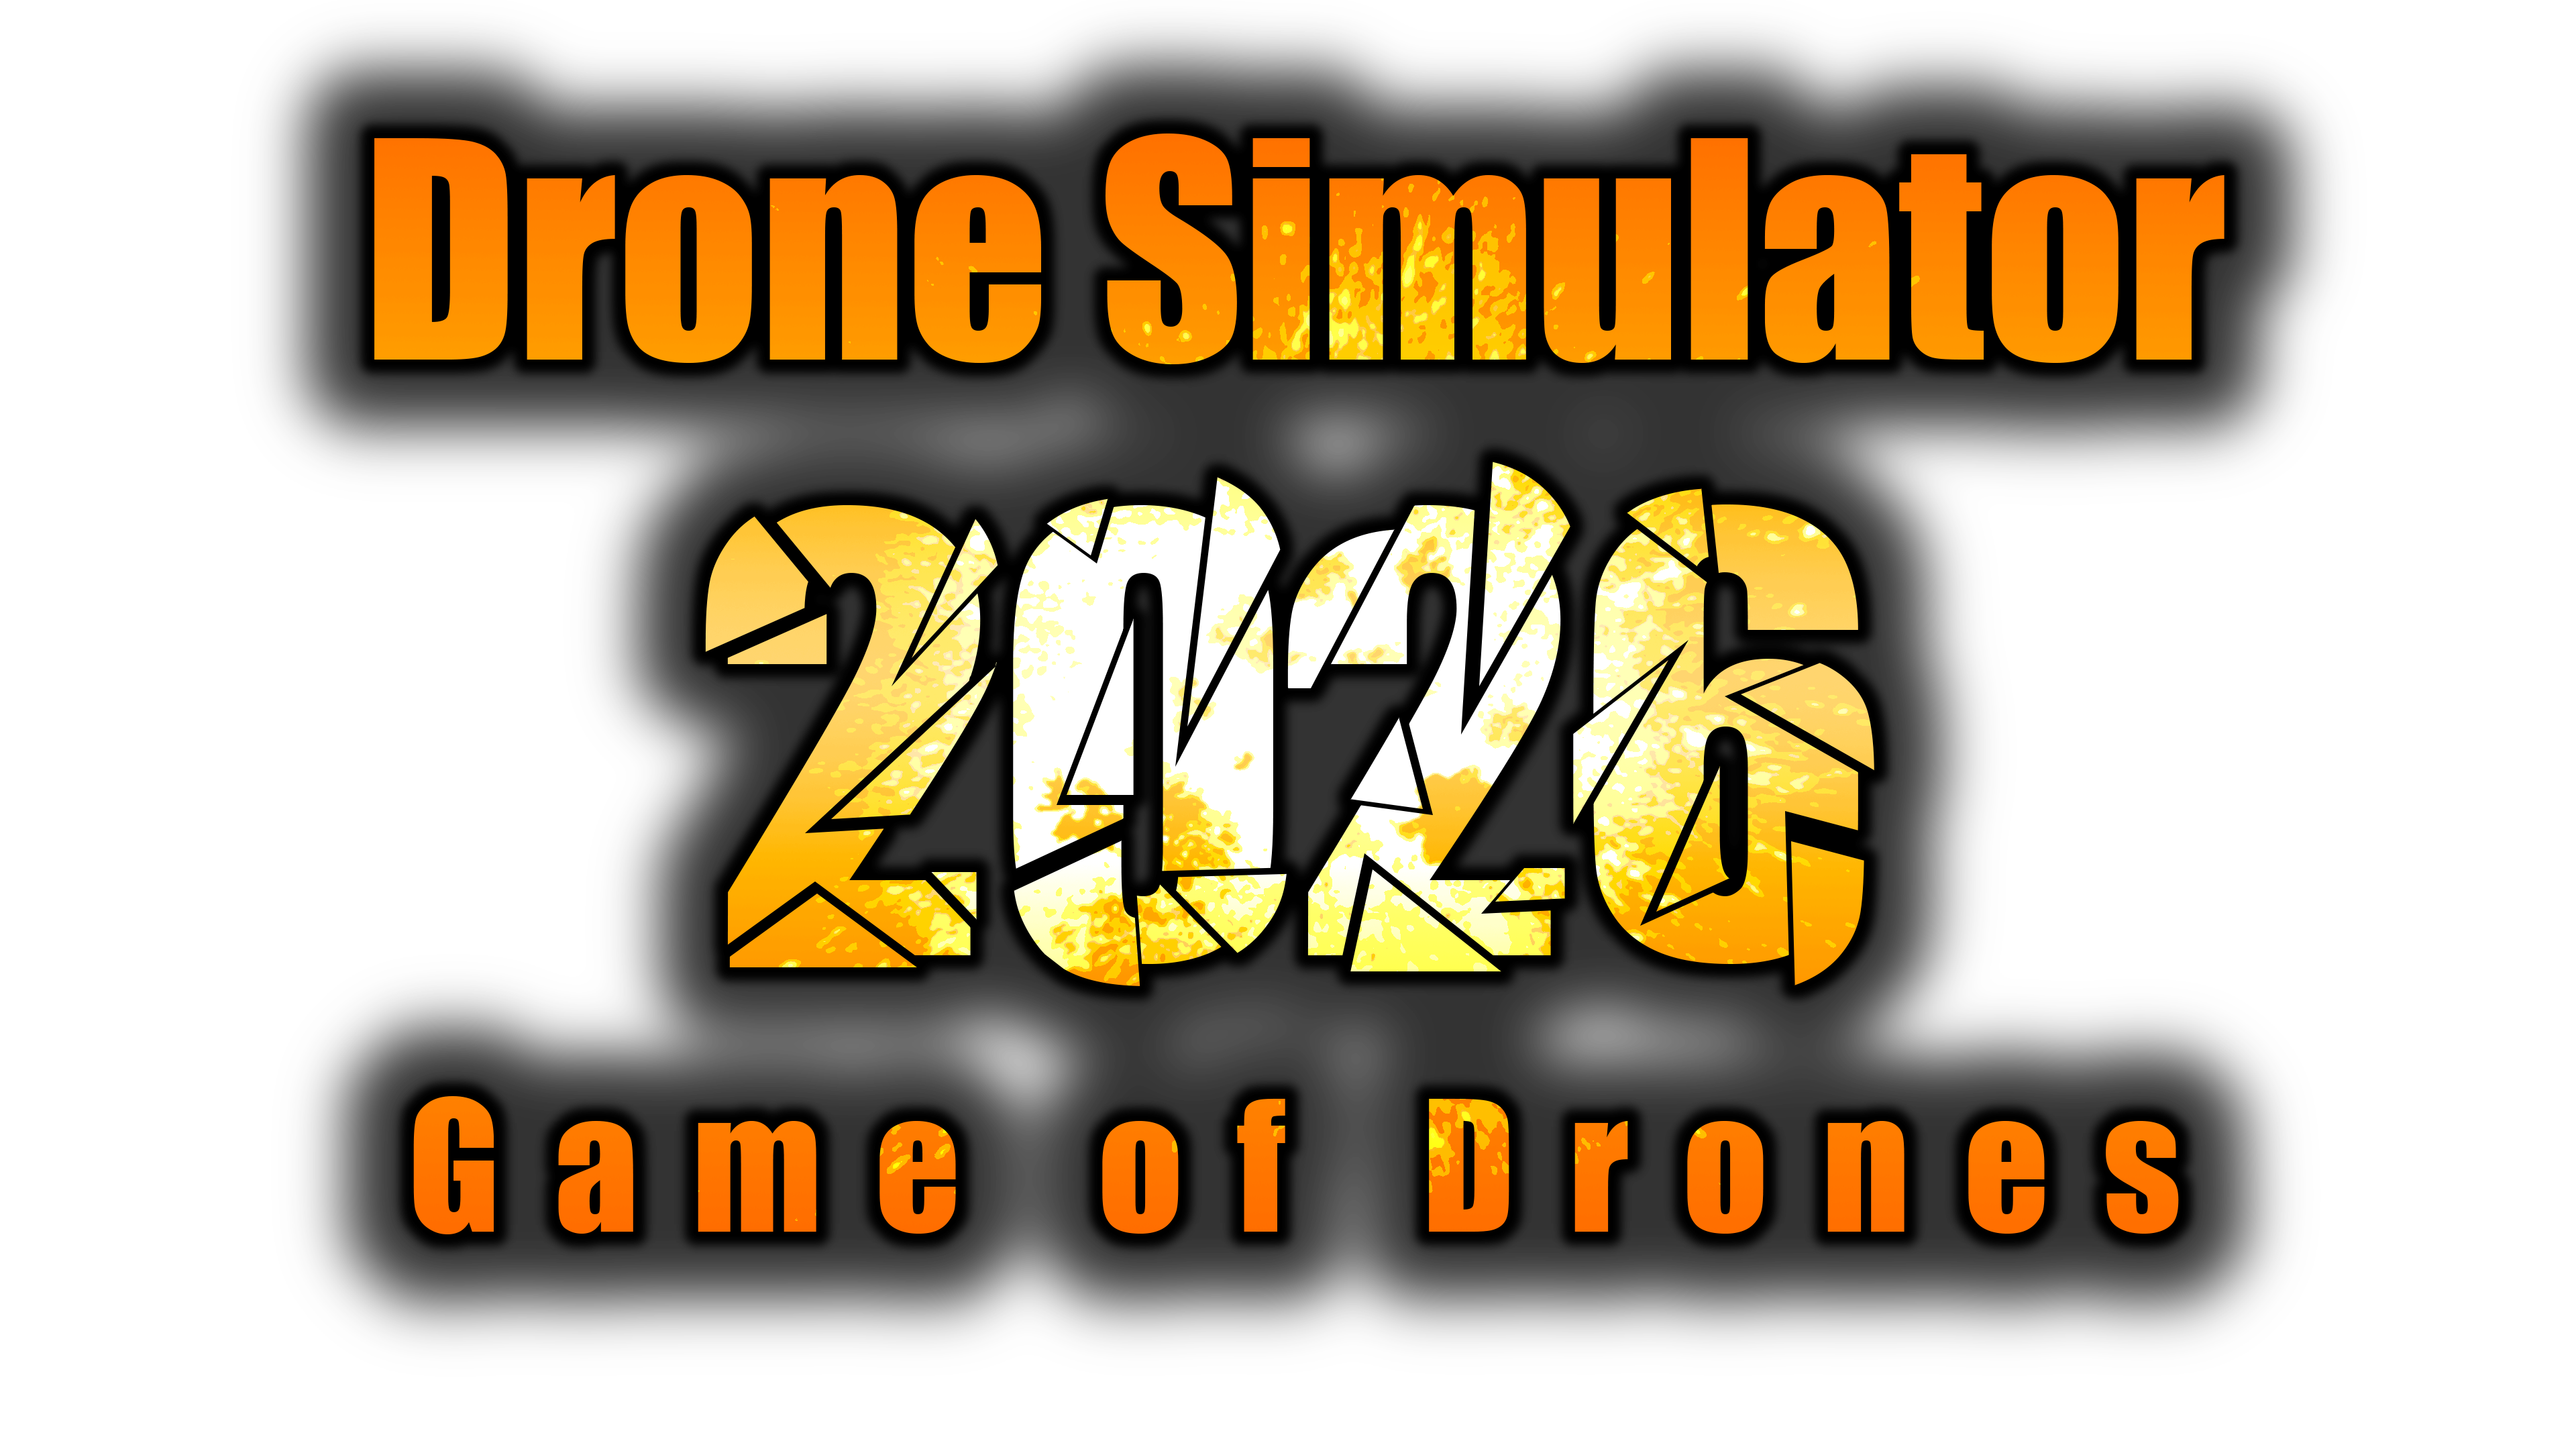 Drone Simulator 2026: A Game of Drones by thesethman for